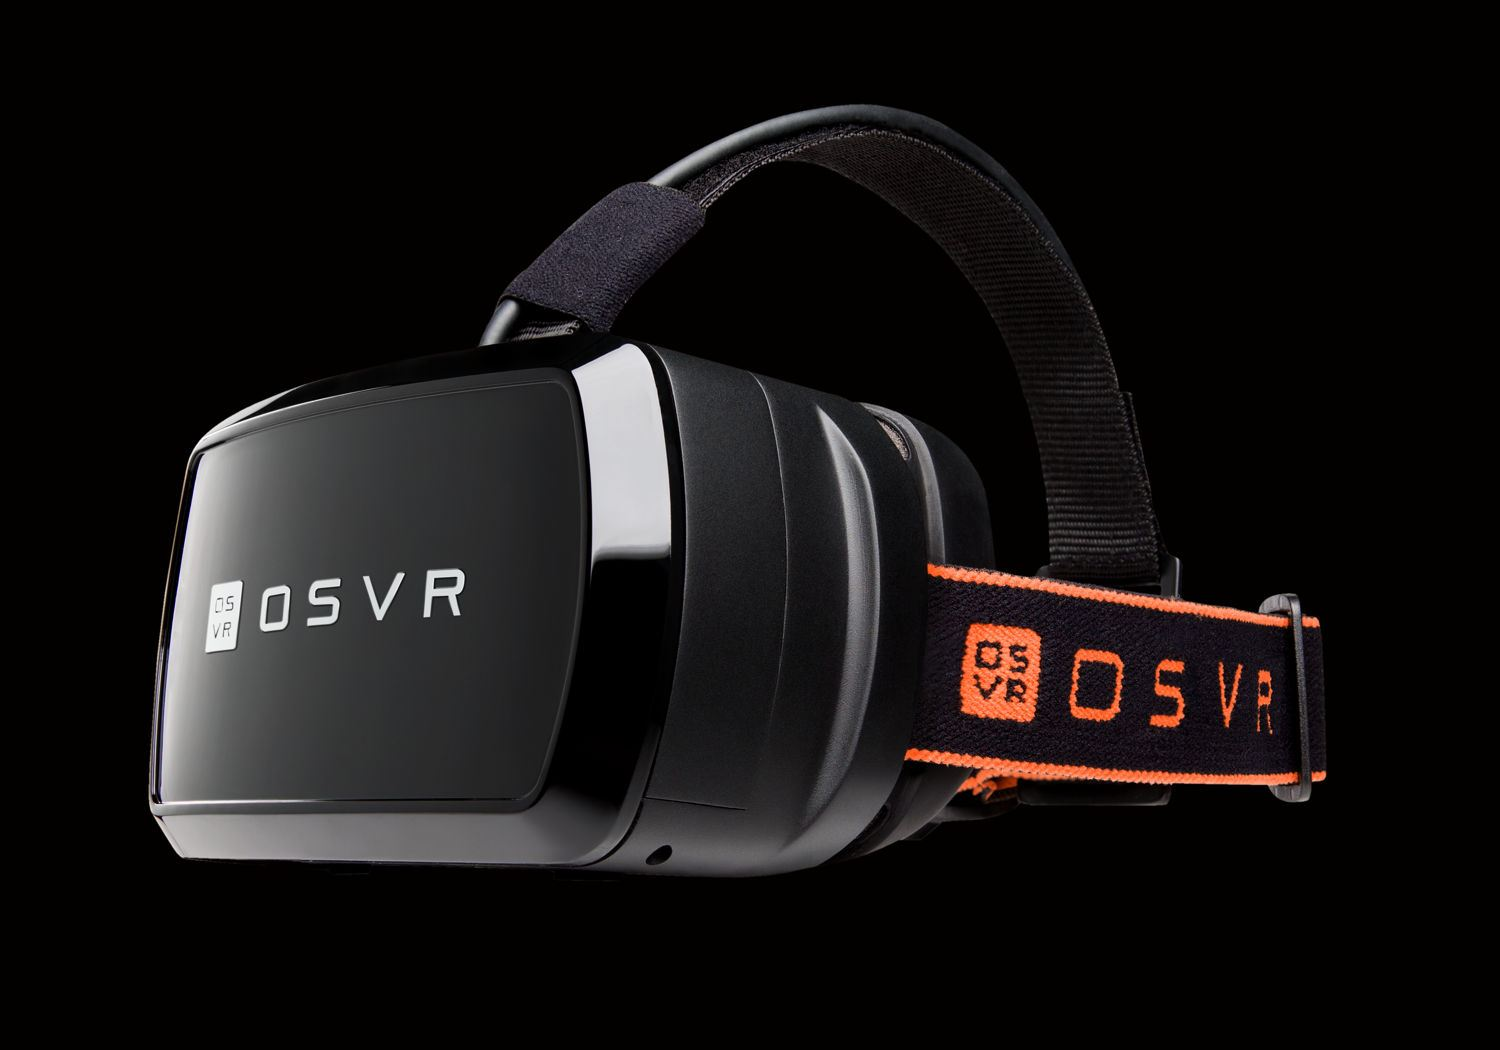 razer_osvr Xbox One Schematics on 360 kinect wire, 360 slim power supply, 360s power supply circuit board, controller battery,